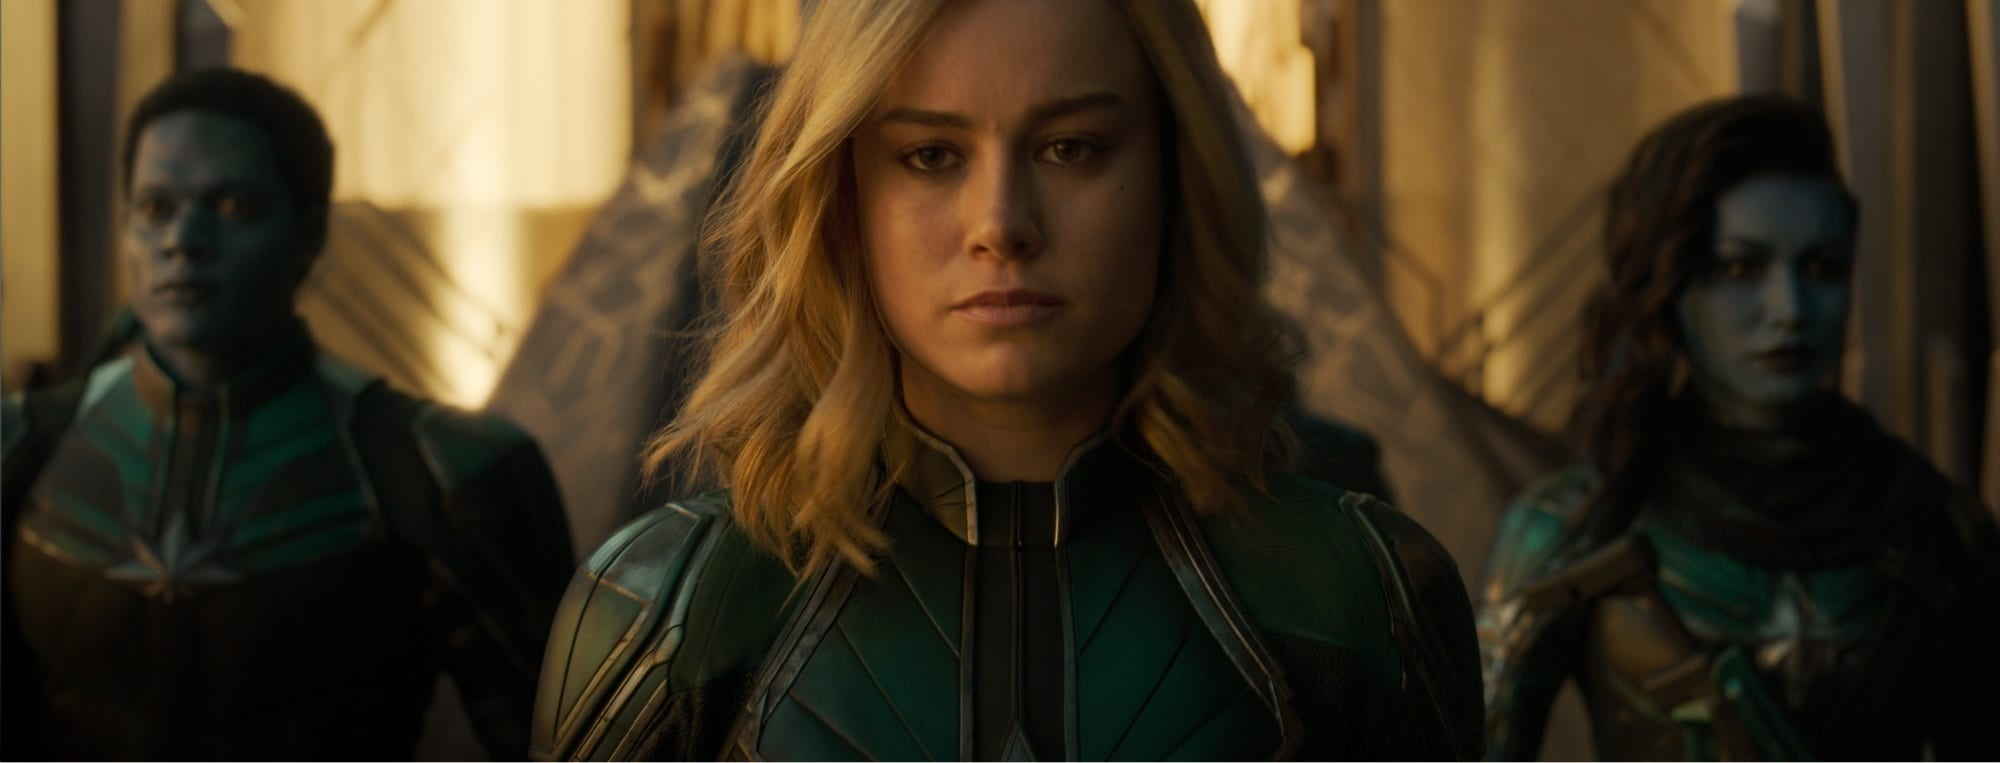 Captain Marvel - Captain Marvel - Everything You Need To Know About Captain Marvel